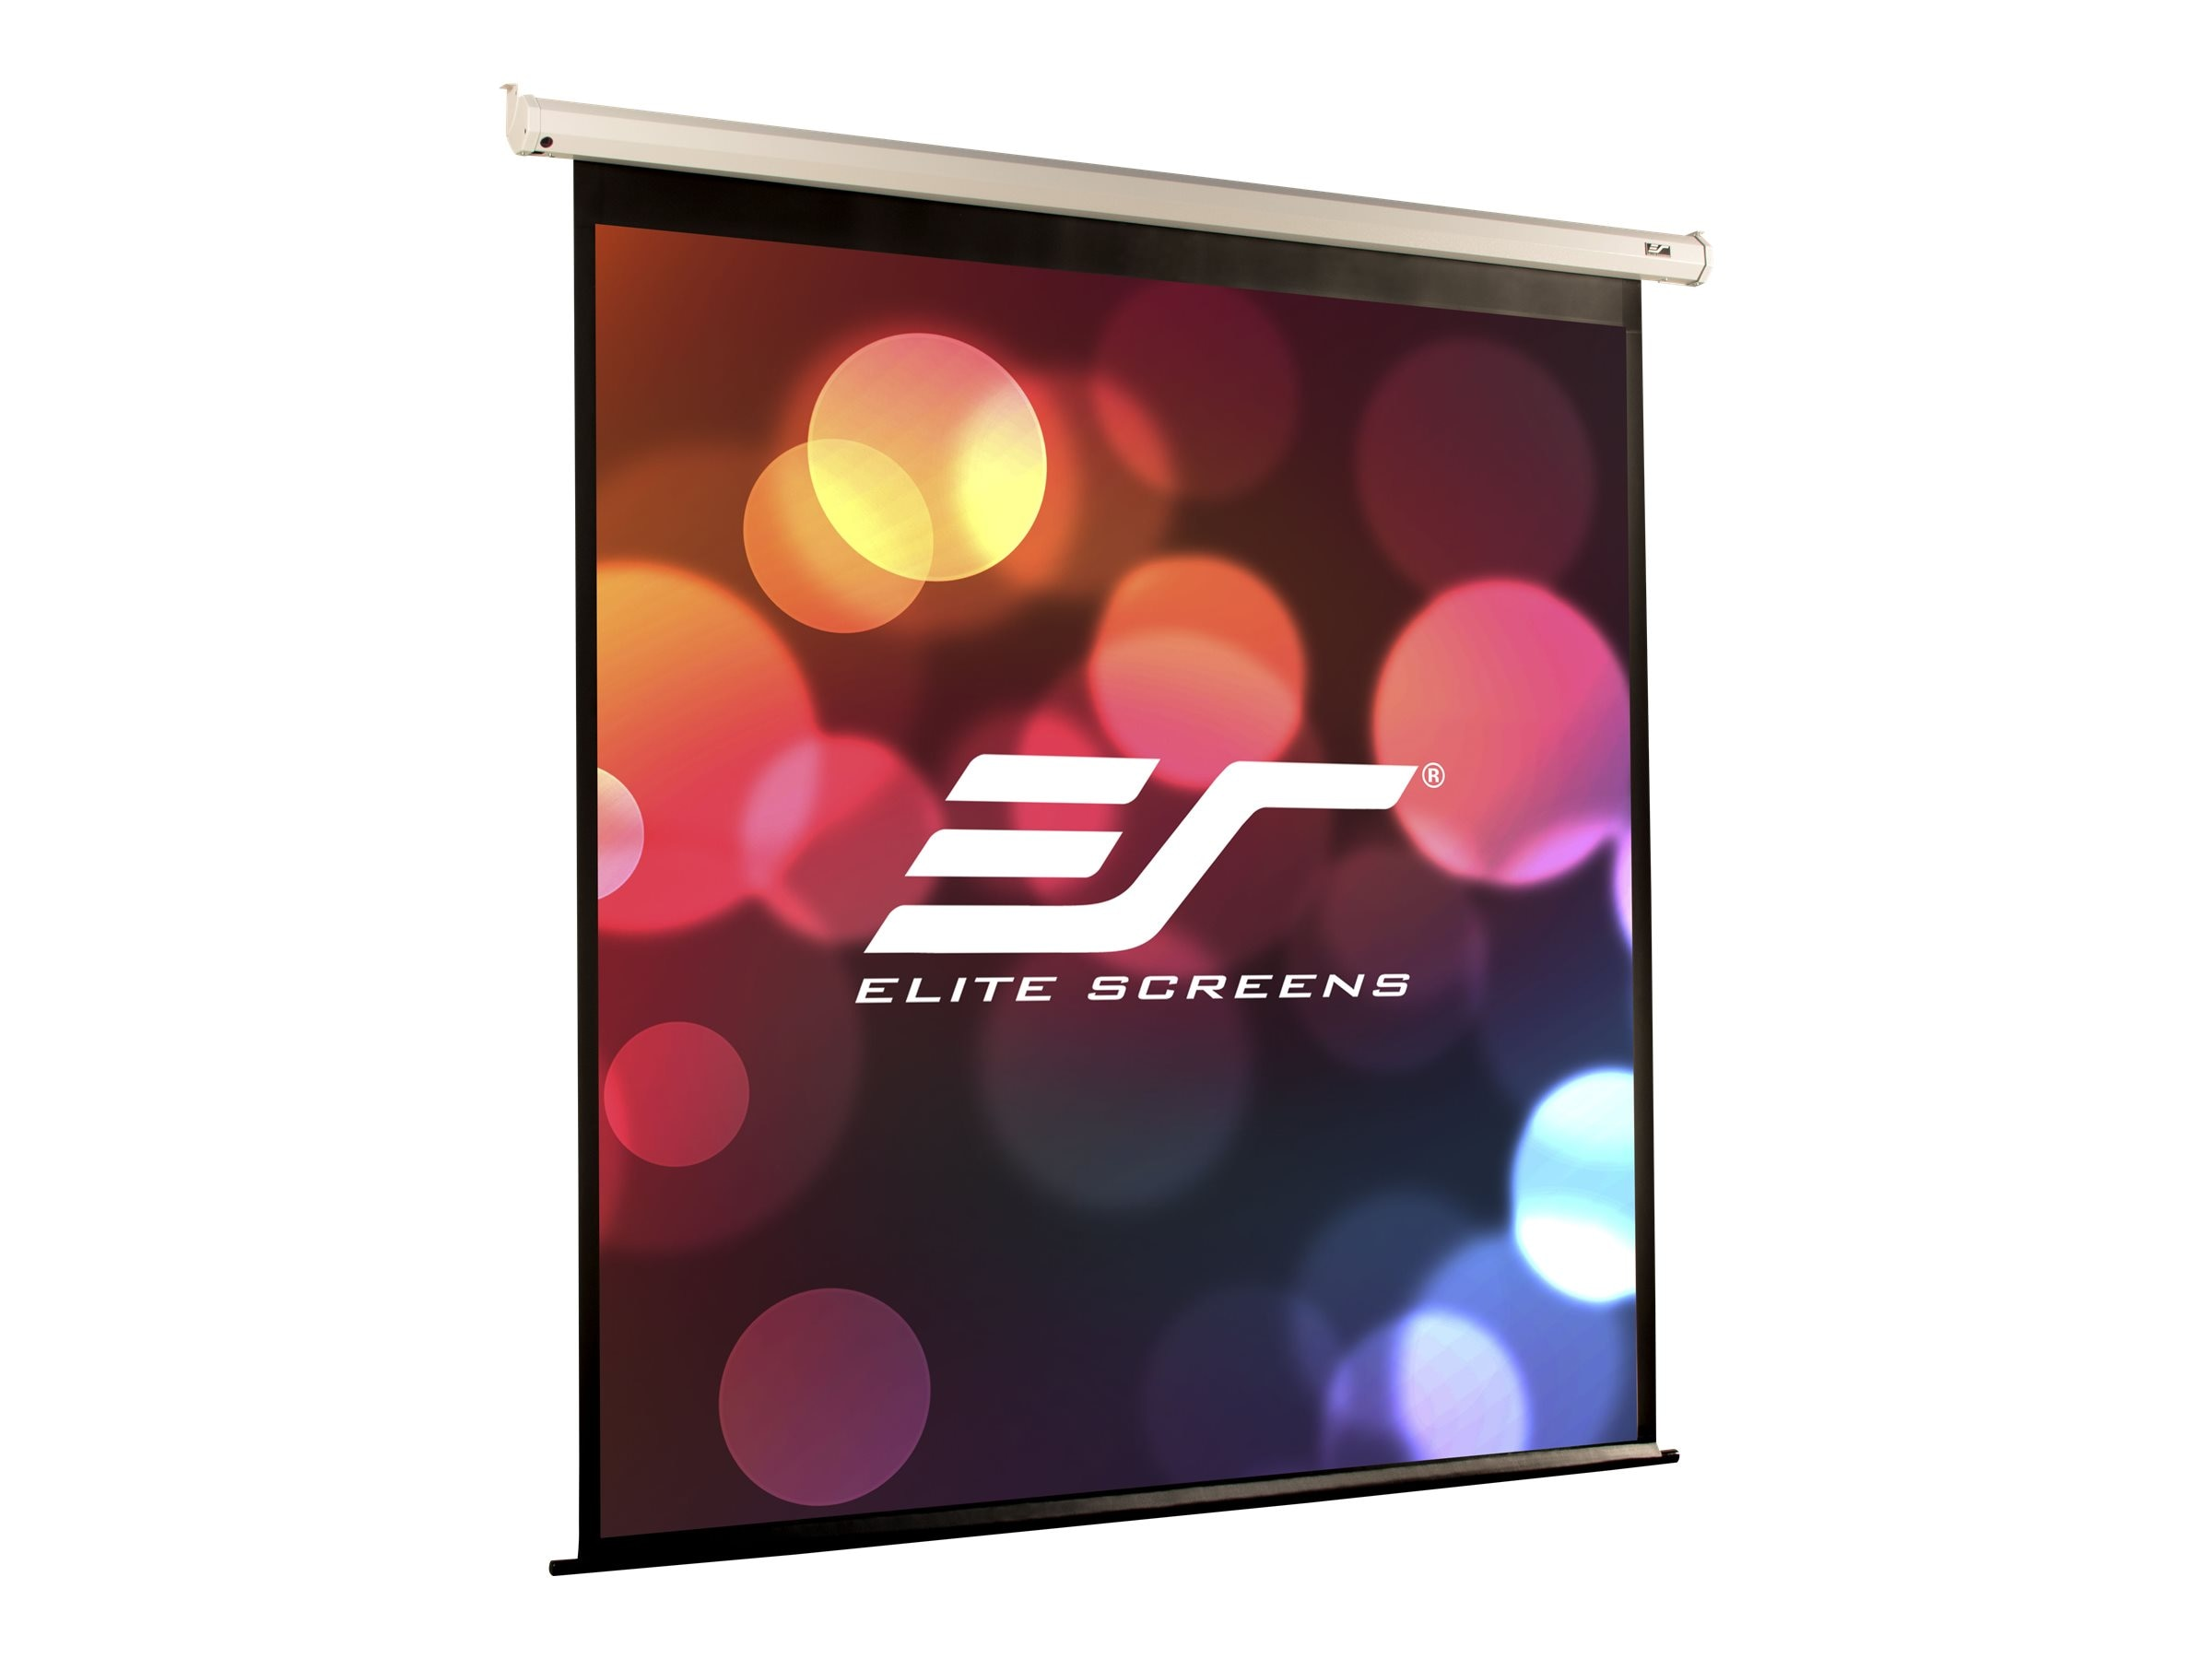 Elite VMax2 Projection Screen with White Case, MaxWhite, 1:1, 99in (Free Mount after MIR), VMAX99XWS2, 9103436, Projector Screens